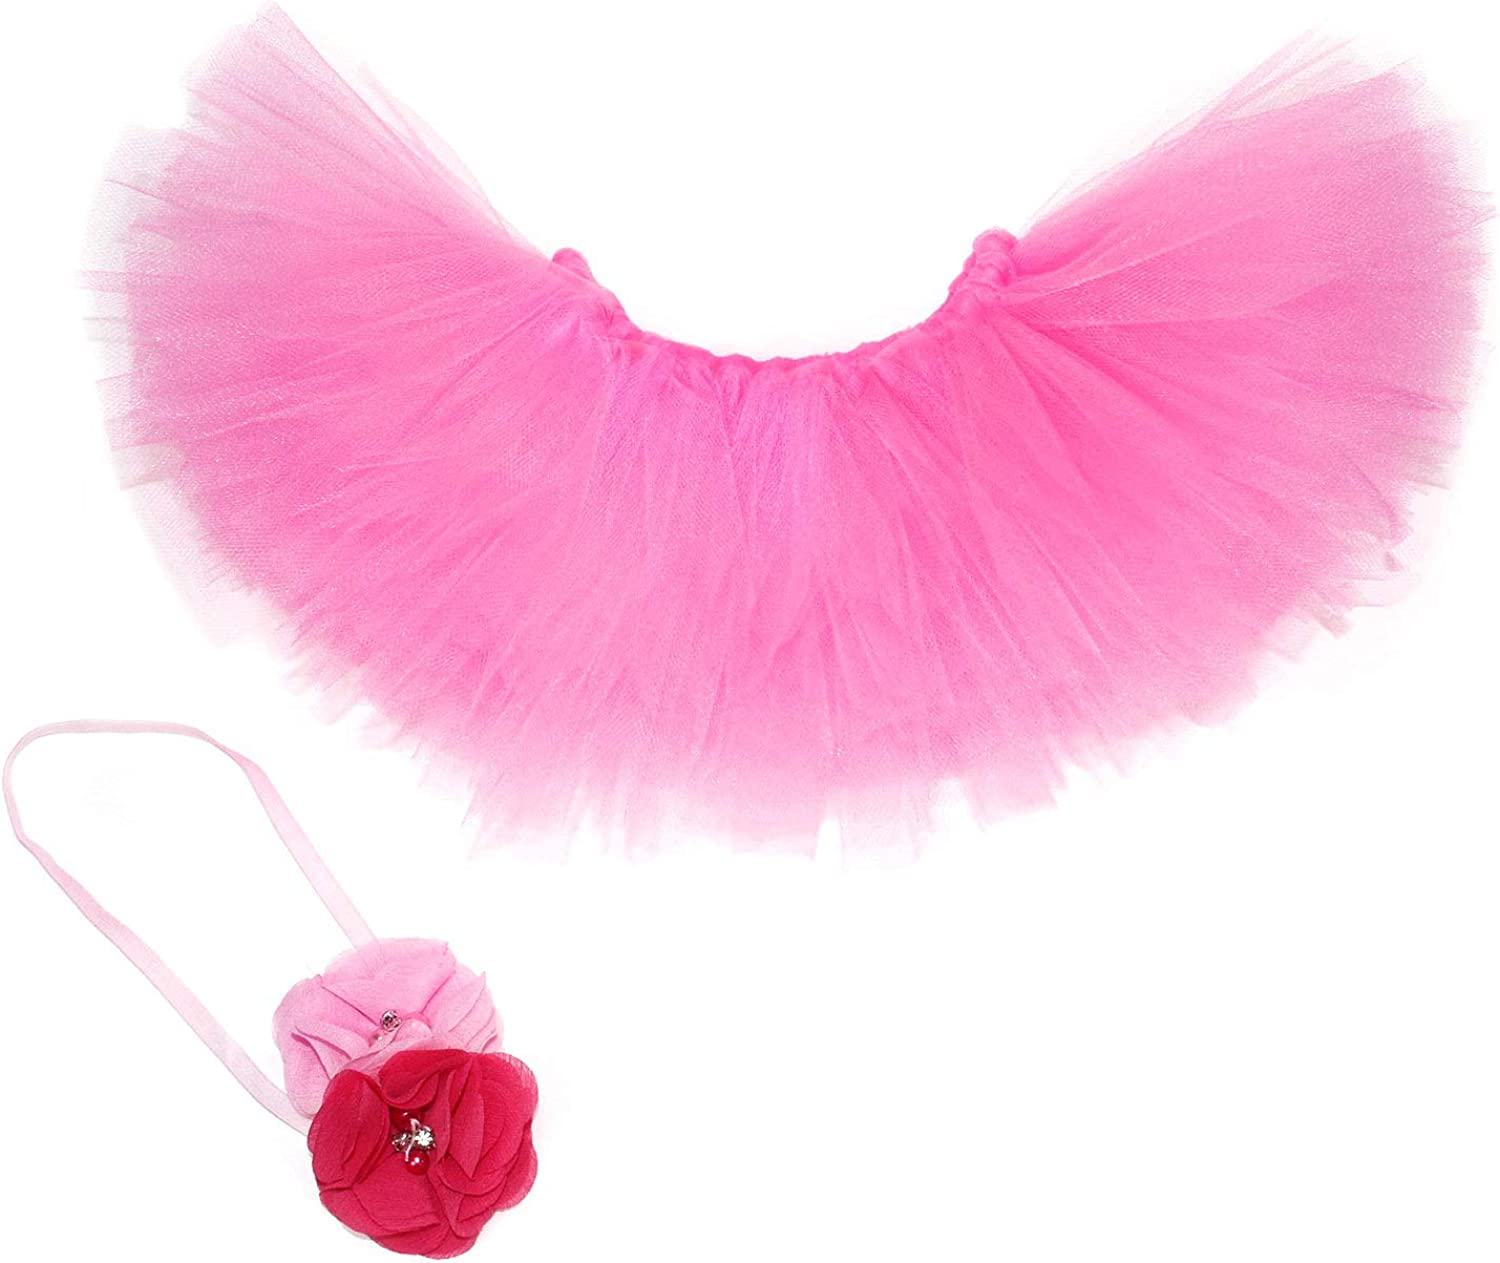 Infant Photography Props//Baby Girl Photo Props Baby Tutu Skirt and Headband Set Newborn Girl Photography Props Outfits